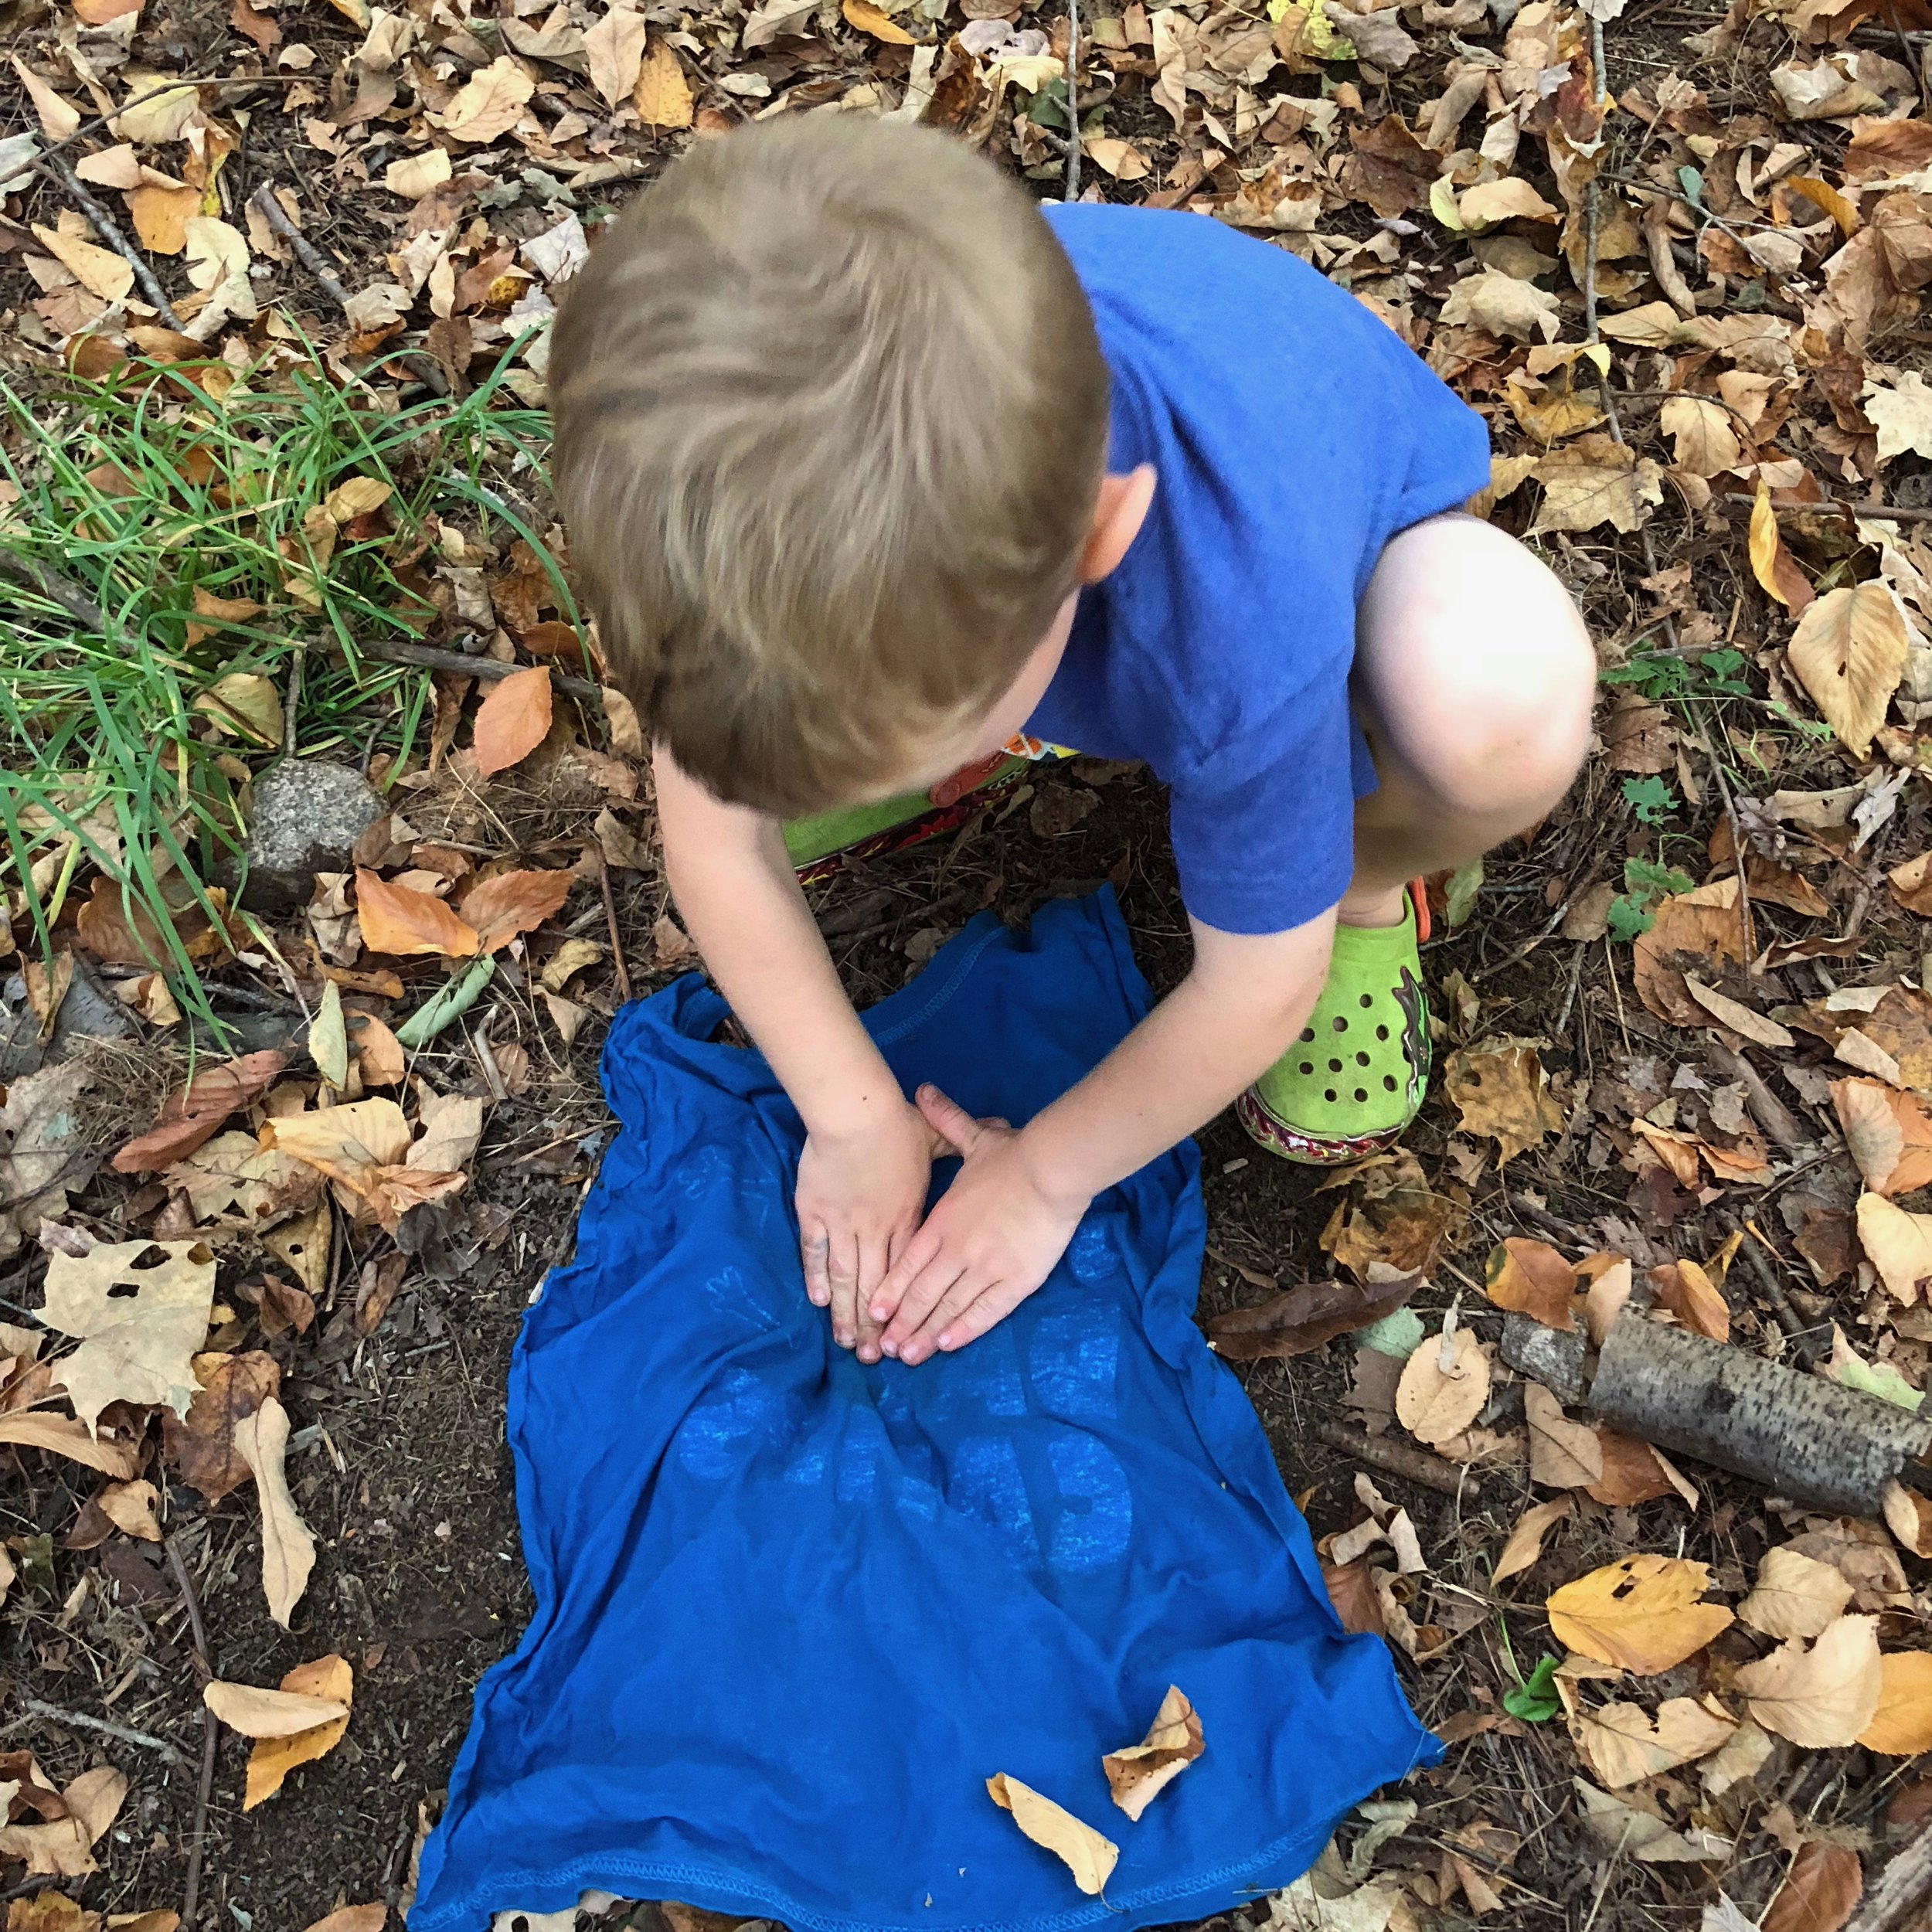 We laid down cotton t-shirts to keep the dirt out of our clay. Native Americans probably would have formed their pots on wood planks or hides.